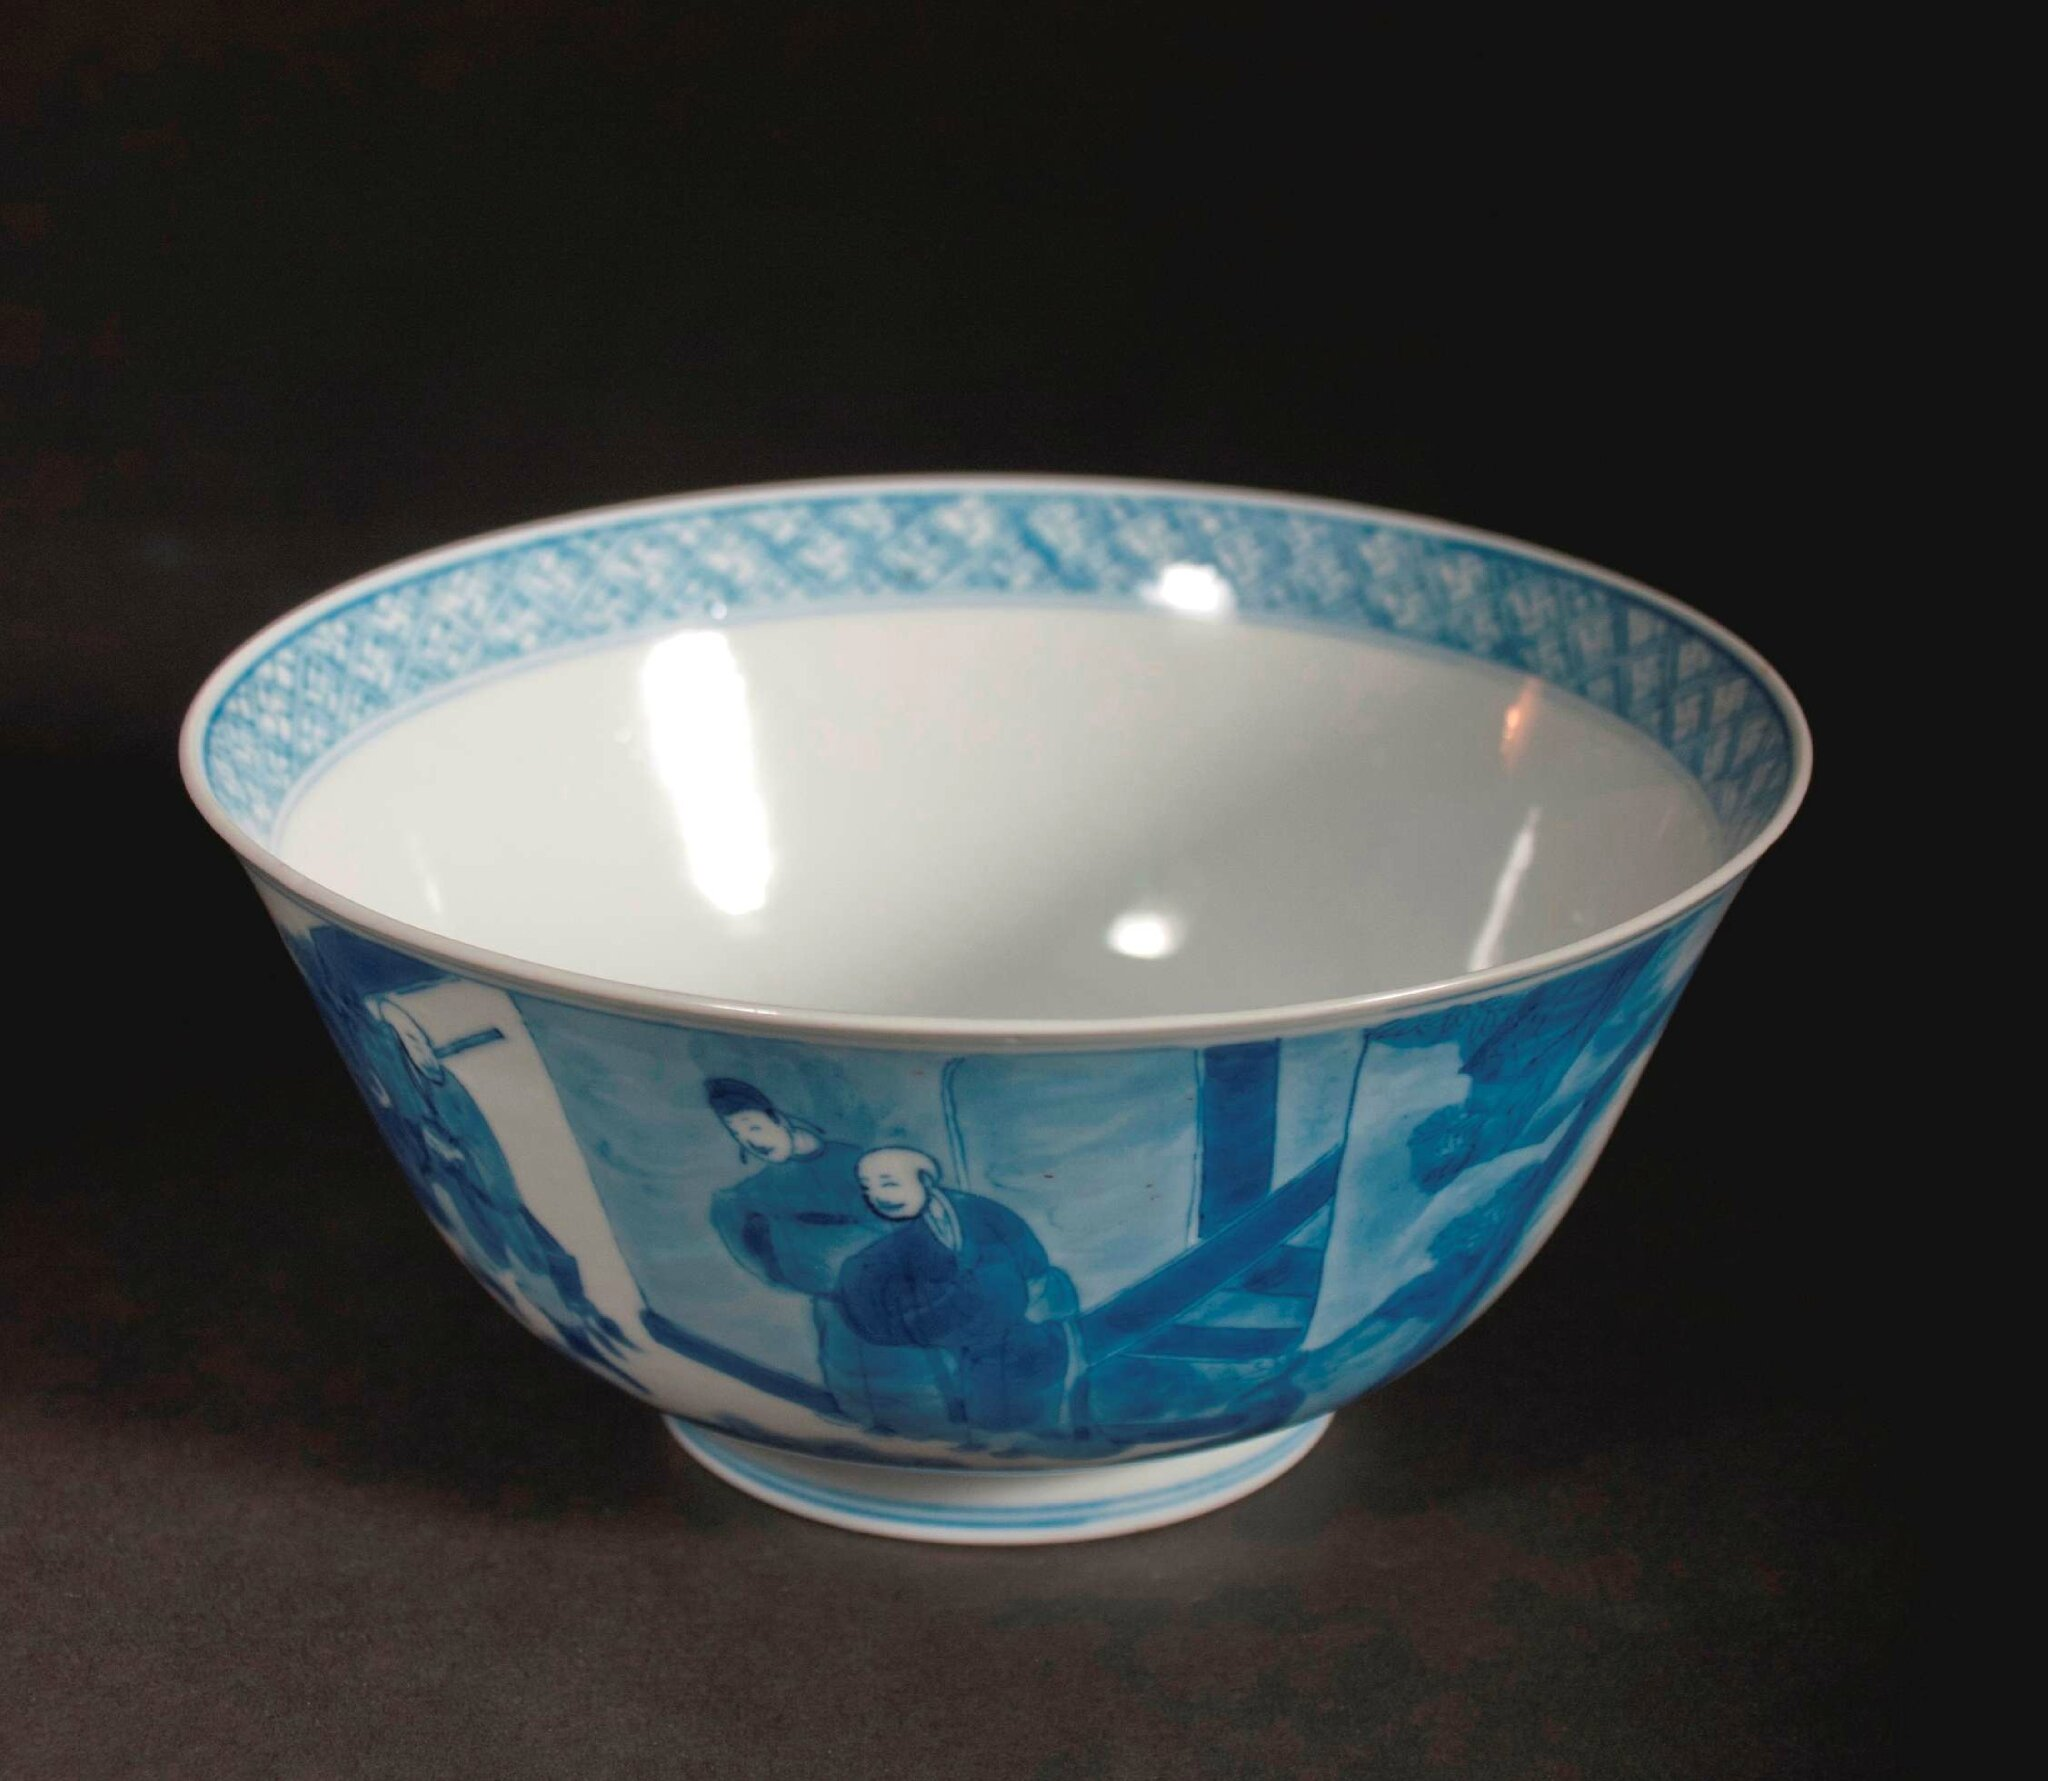 Blue & white bowl, China, Kangxi Mark on the bottom and of the Period (1662 – 1722). Photo courtesy Vanderven Oriental Art.